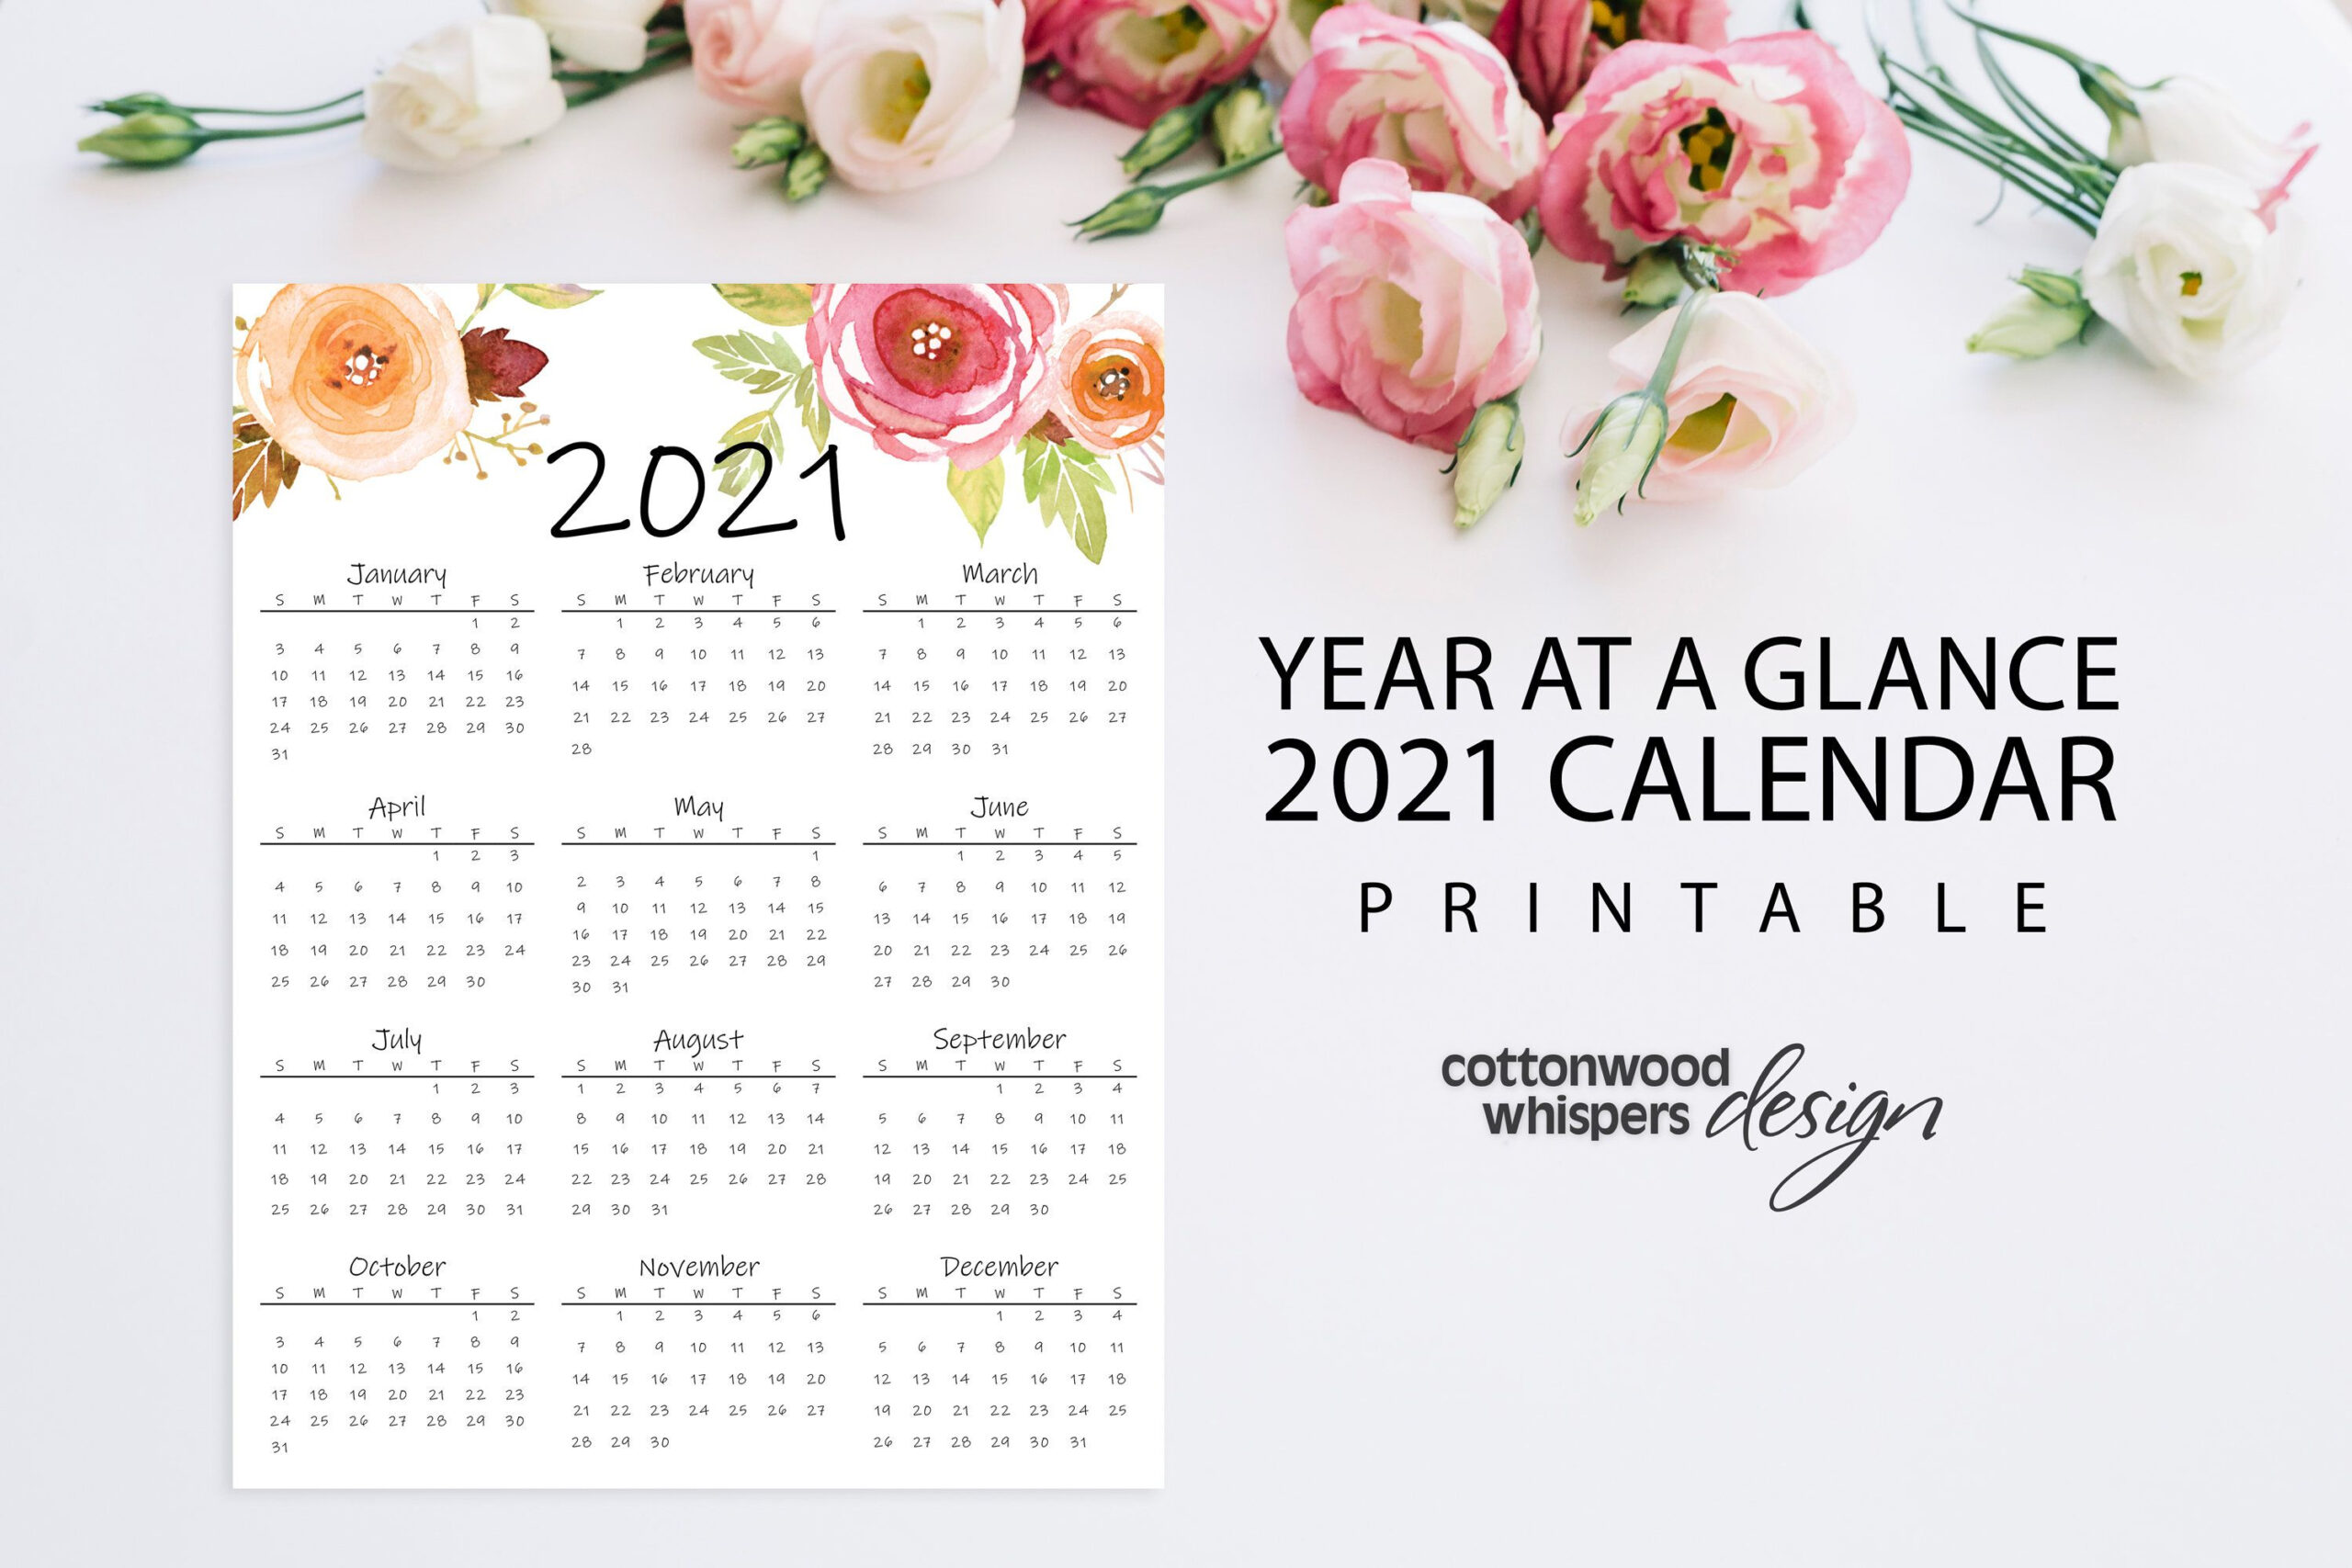 Year At A Glance Calendar 2021 Printable Calendar Letter